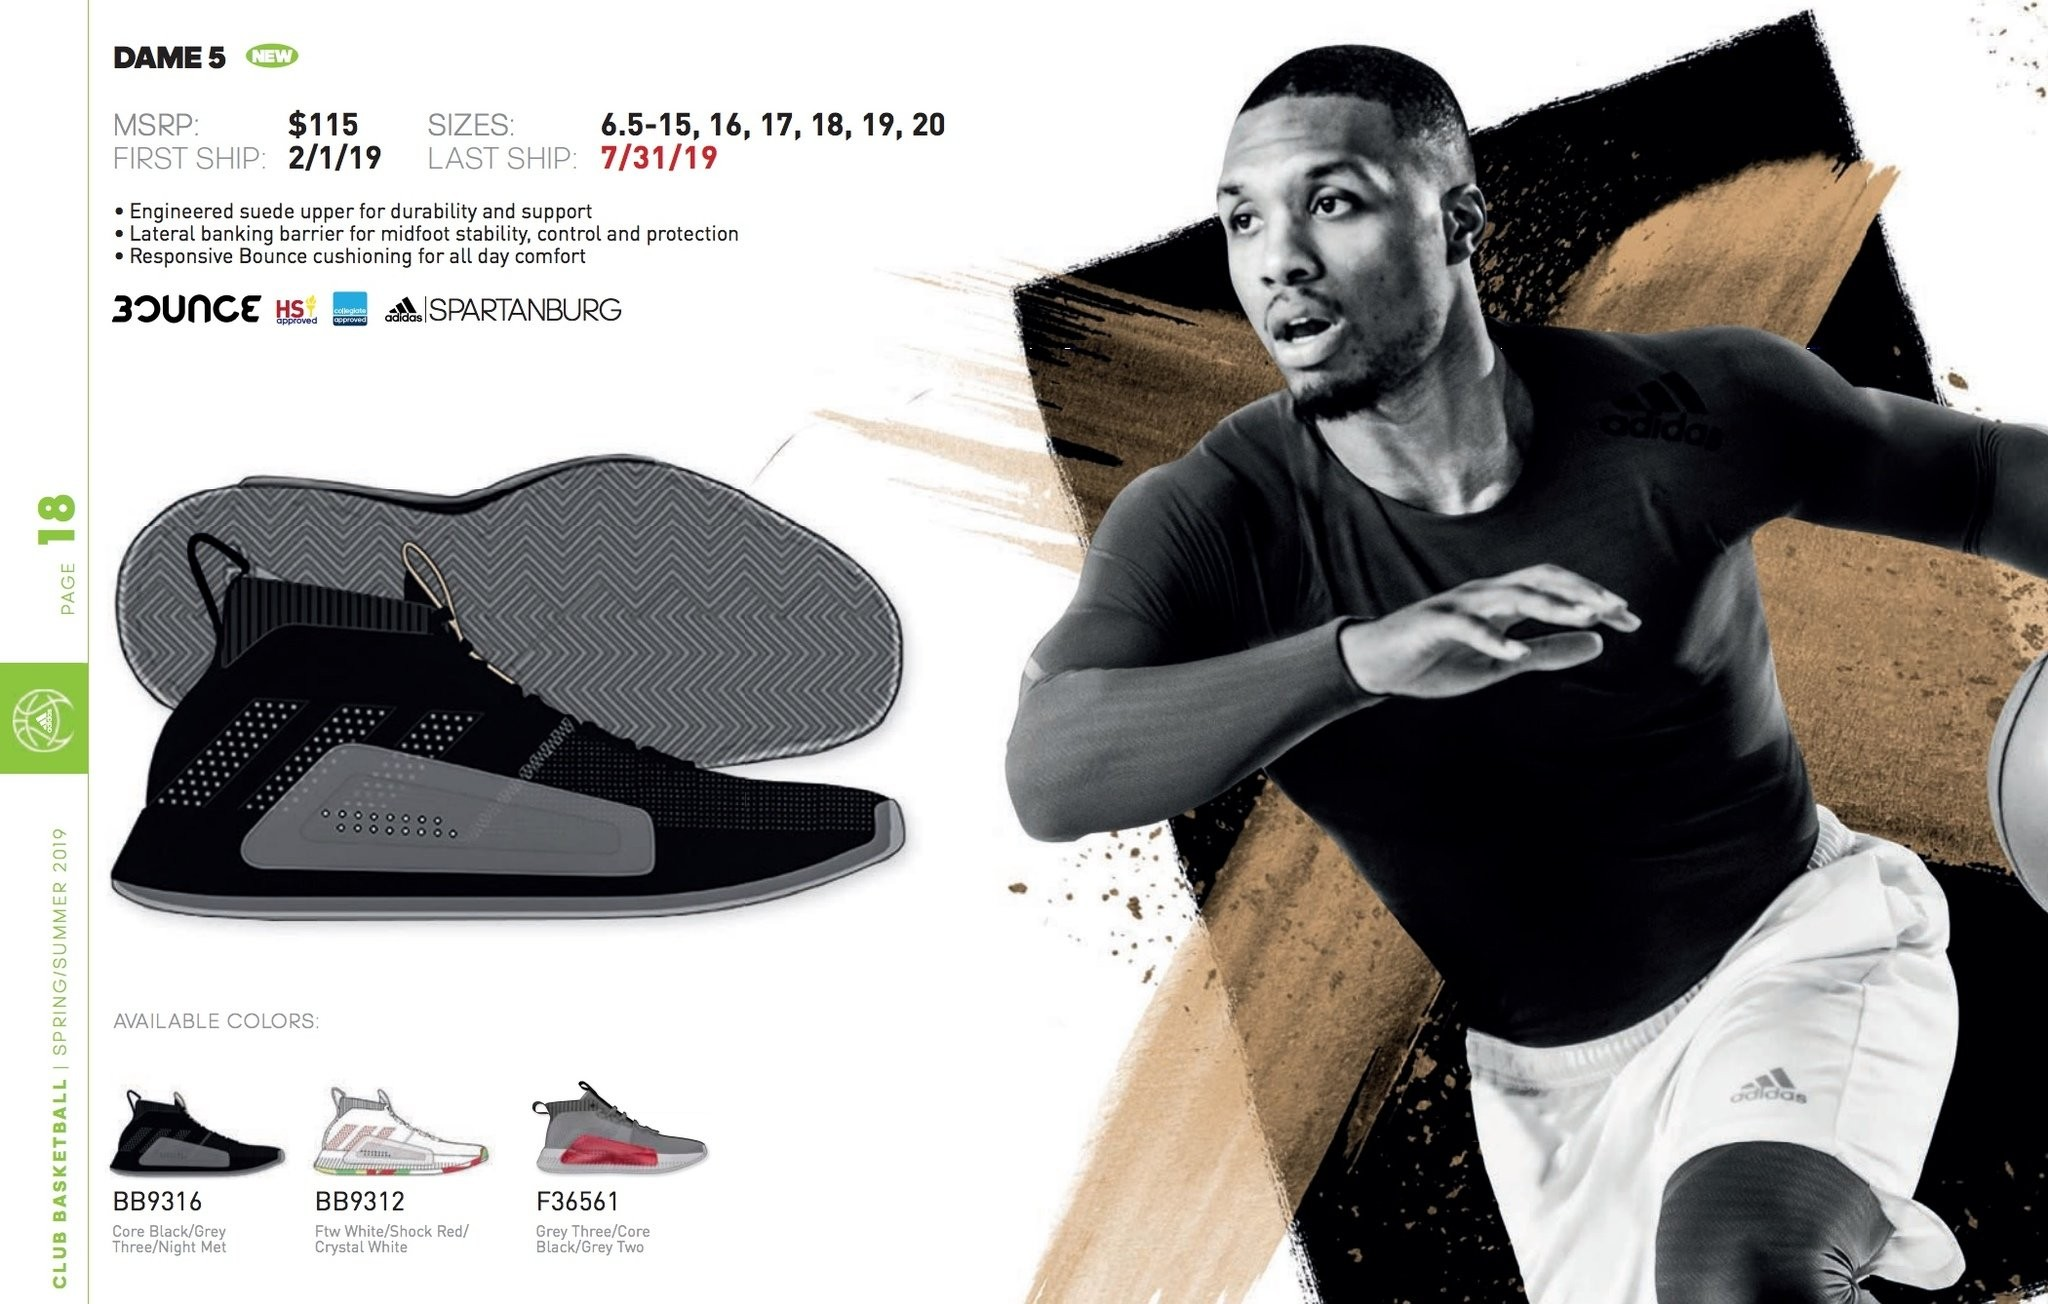 Adidas unveils early look at Damian